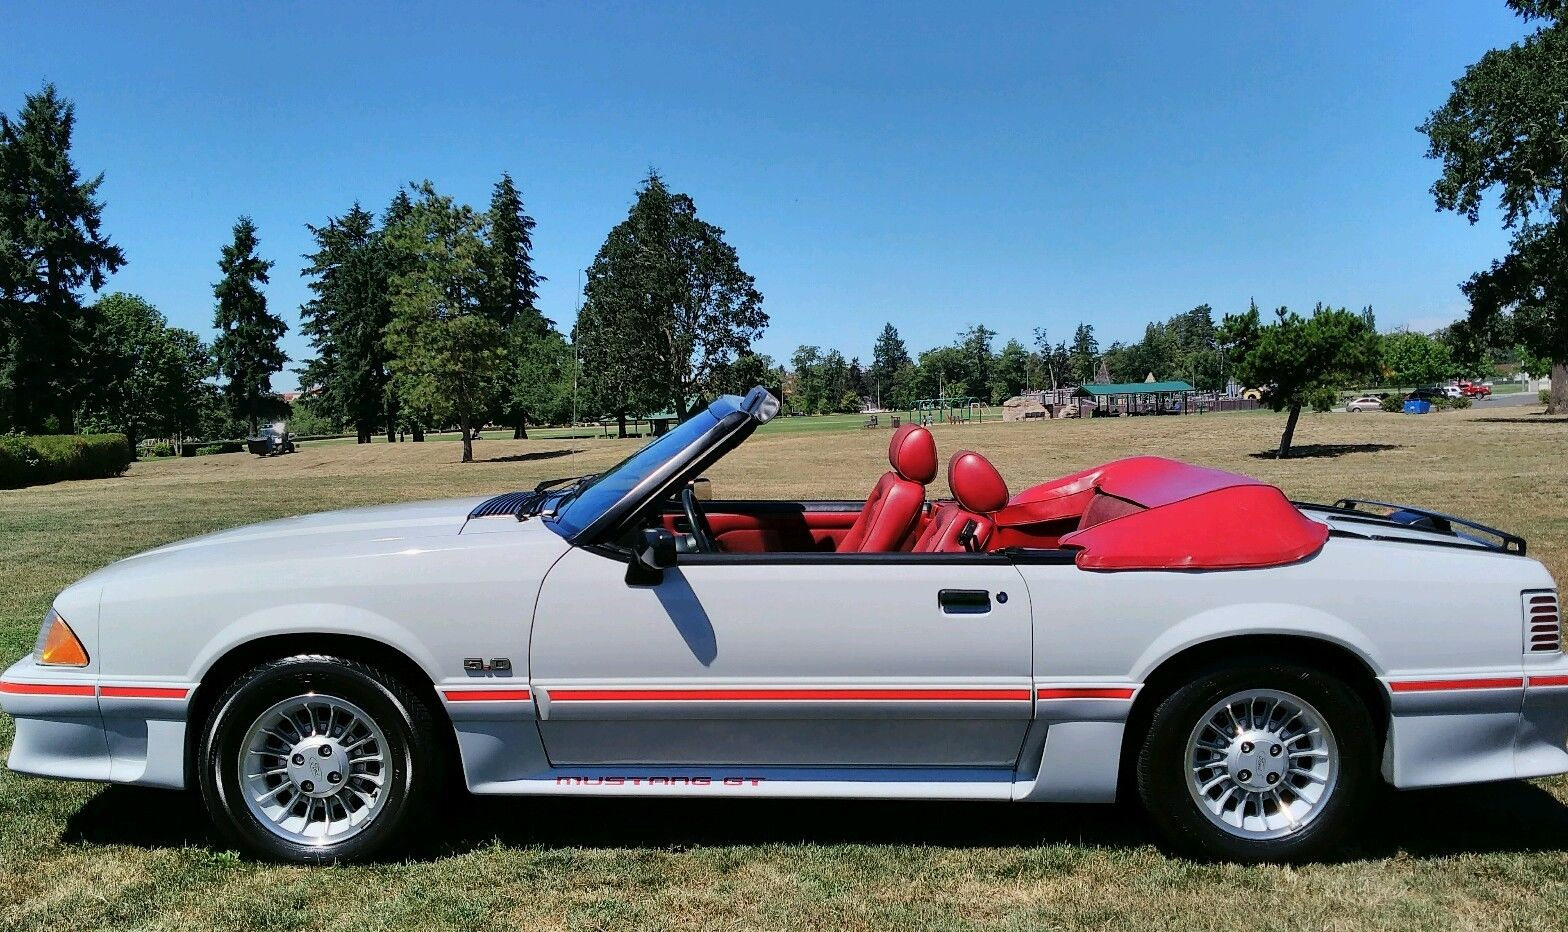 1989 ford mustang cobra gt mustang convertible 5 0 v8 foxbody ultra rare dove gray color with. Black Bedroom Furniture Sets. Home Design Ideas